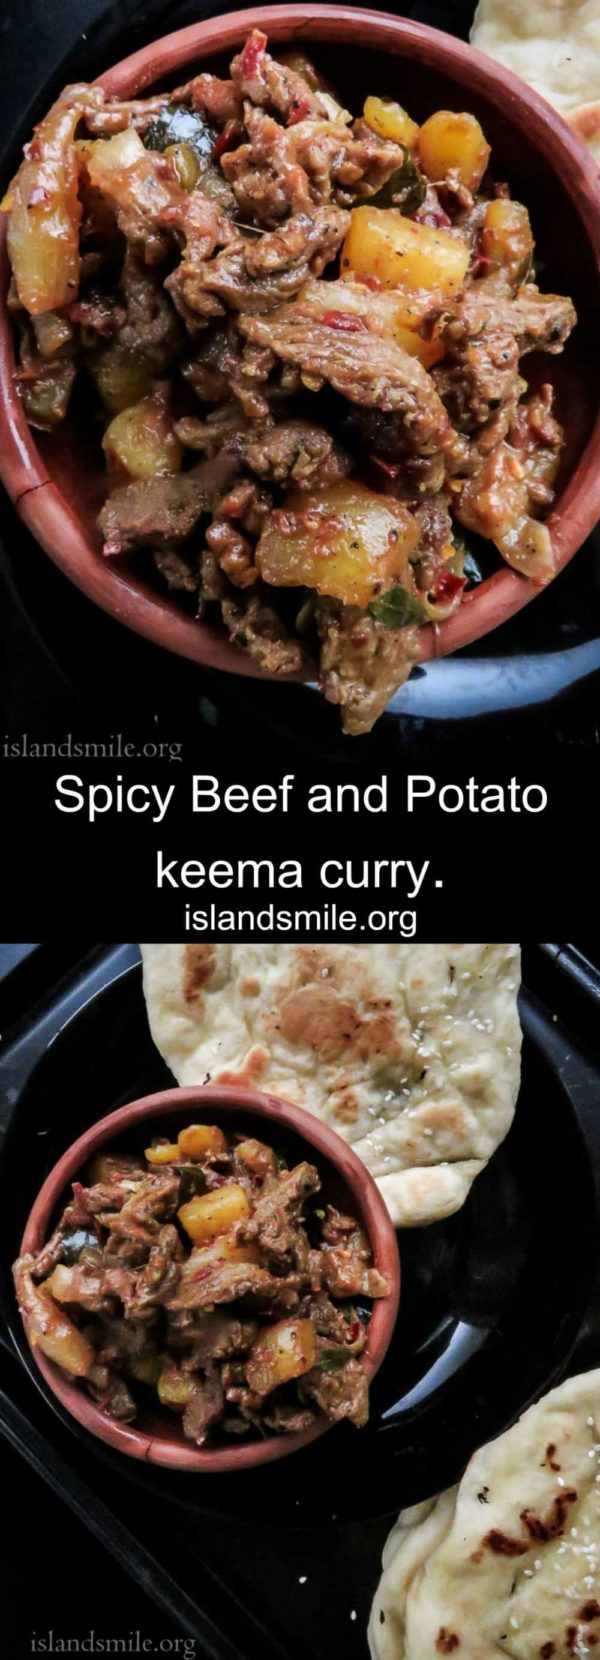 Sri Lankan spicy beef and potato keema curry. It makes a great filling for samosas, empanadas and meaty side-dish for your bread, parathas and naan. With Sri Lankan spices this shredded beef dish is a must try